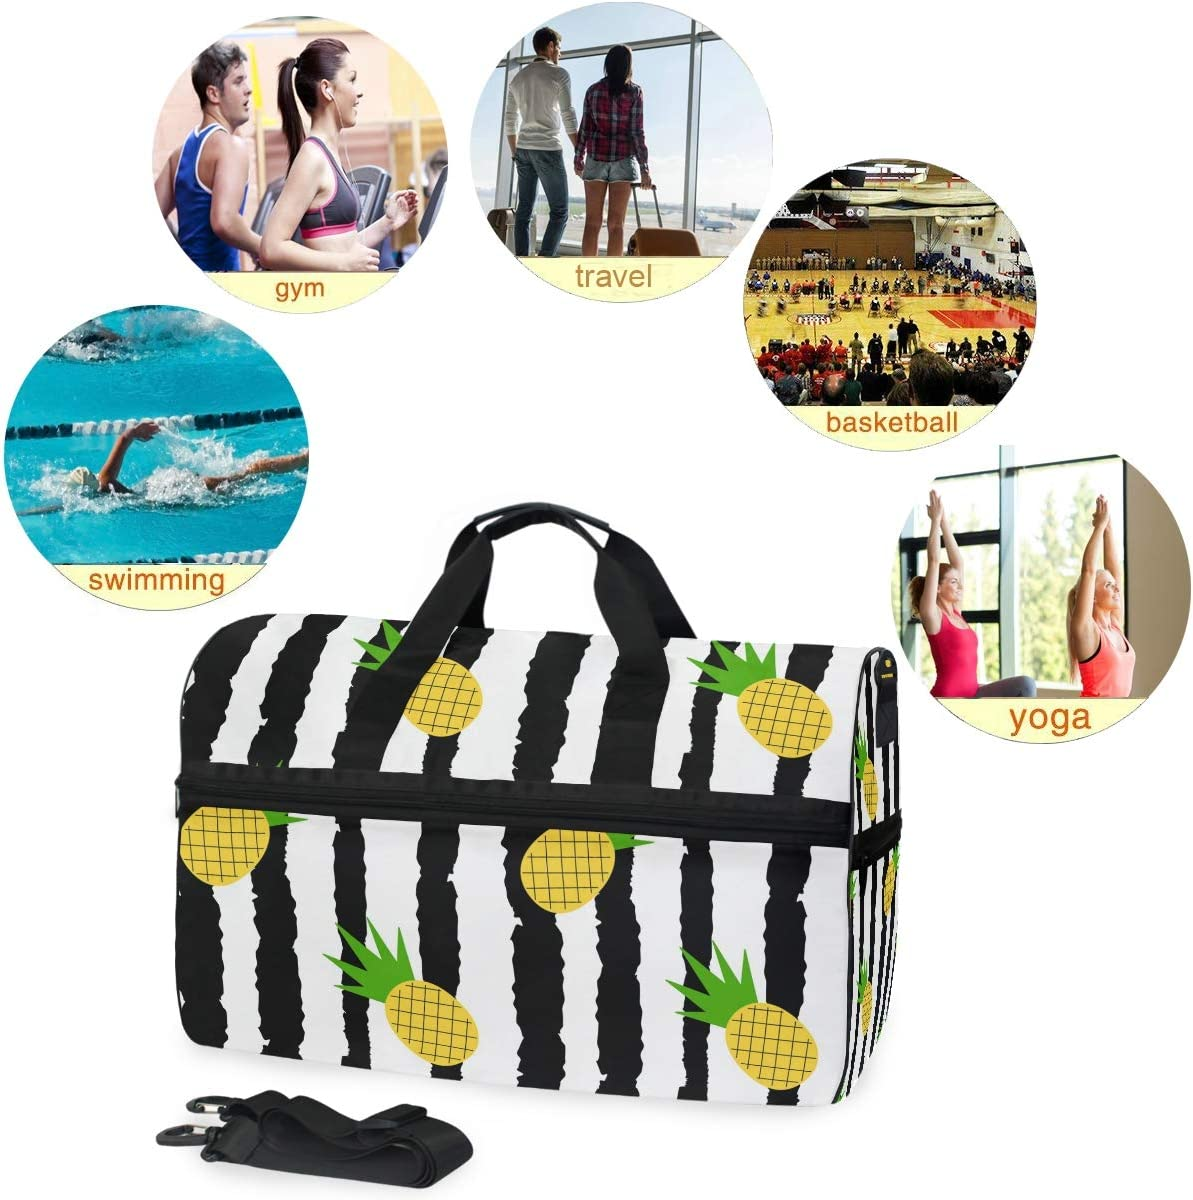 WIHVE Gym Bag Tropical Pineapple Stripes Travel Duffel Bag with Shoe Compartment